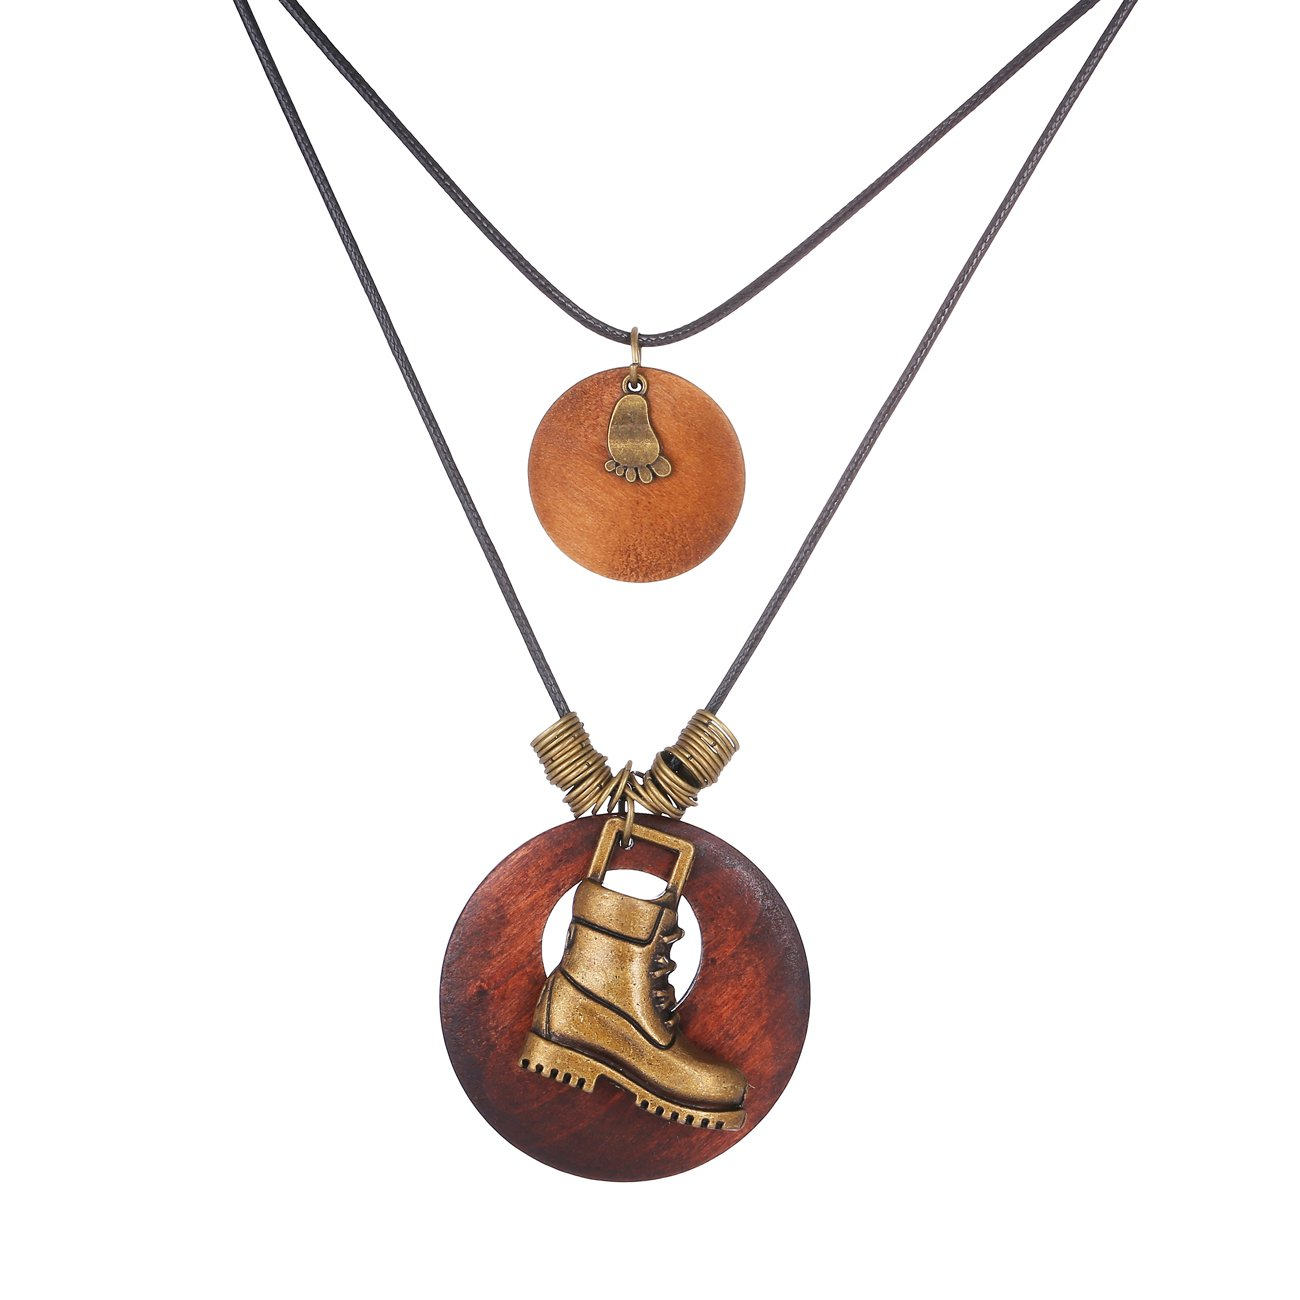 JJTZX Wood Simple Circle Pendant With Cute Charms Long Leather Necklace Sweater Chain Necklace Gift for Mom (Boot)